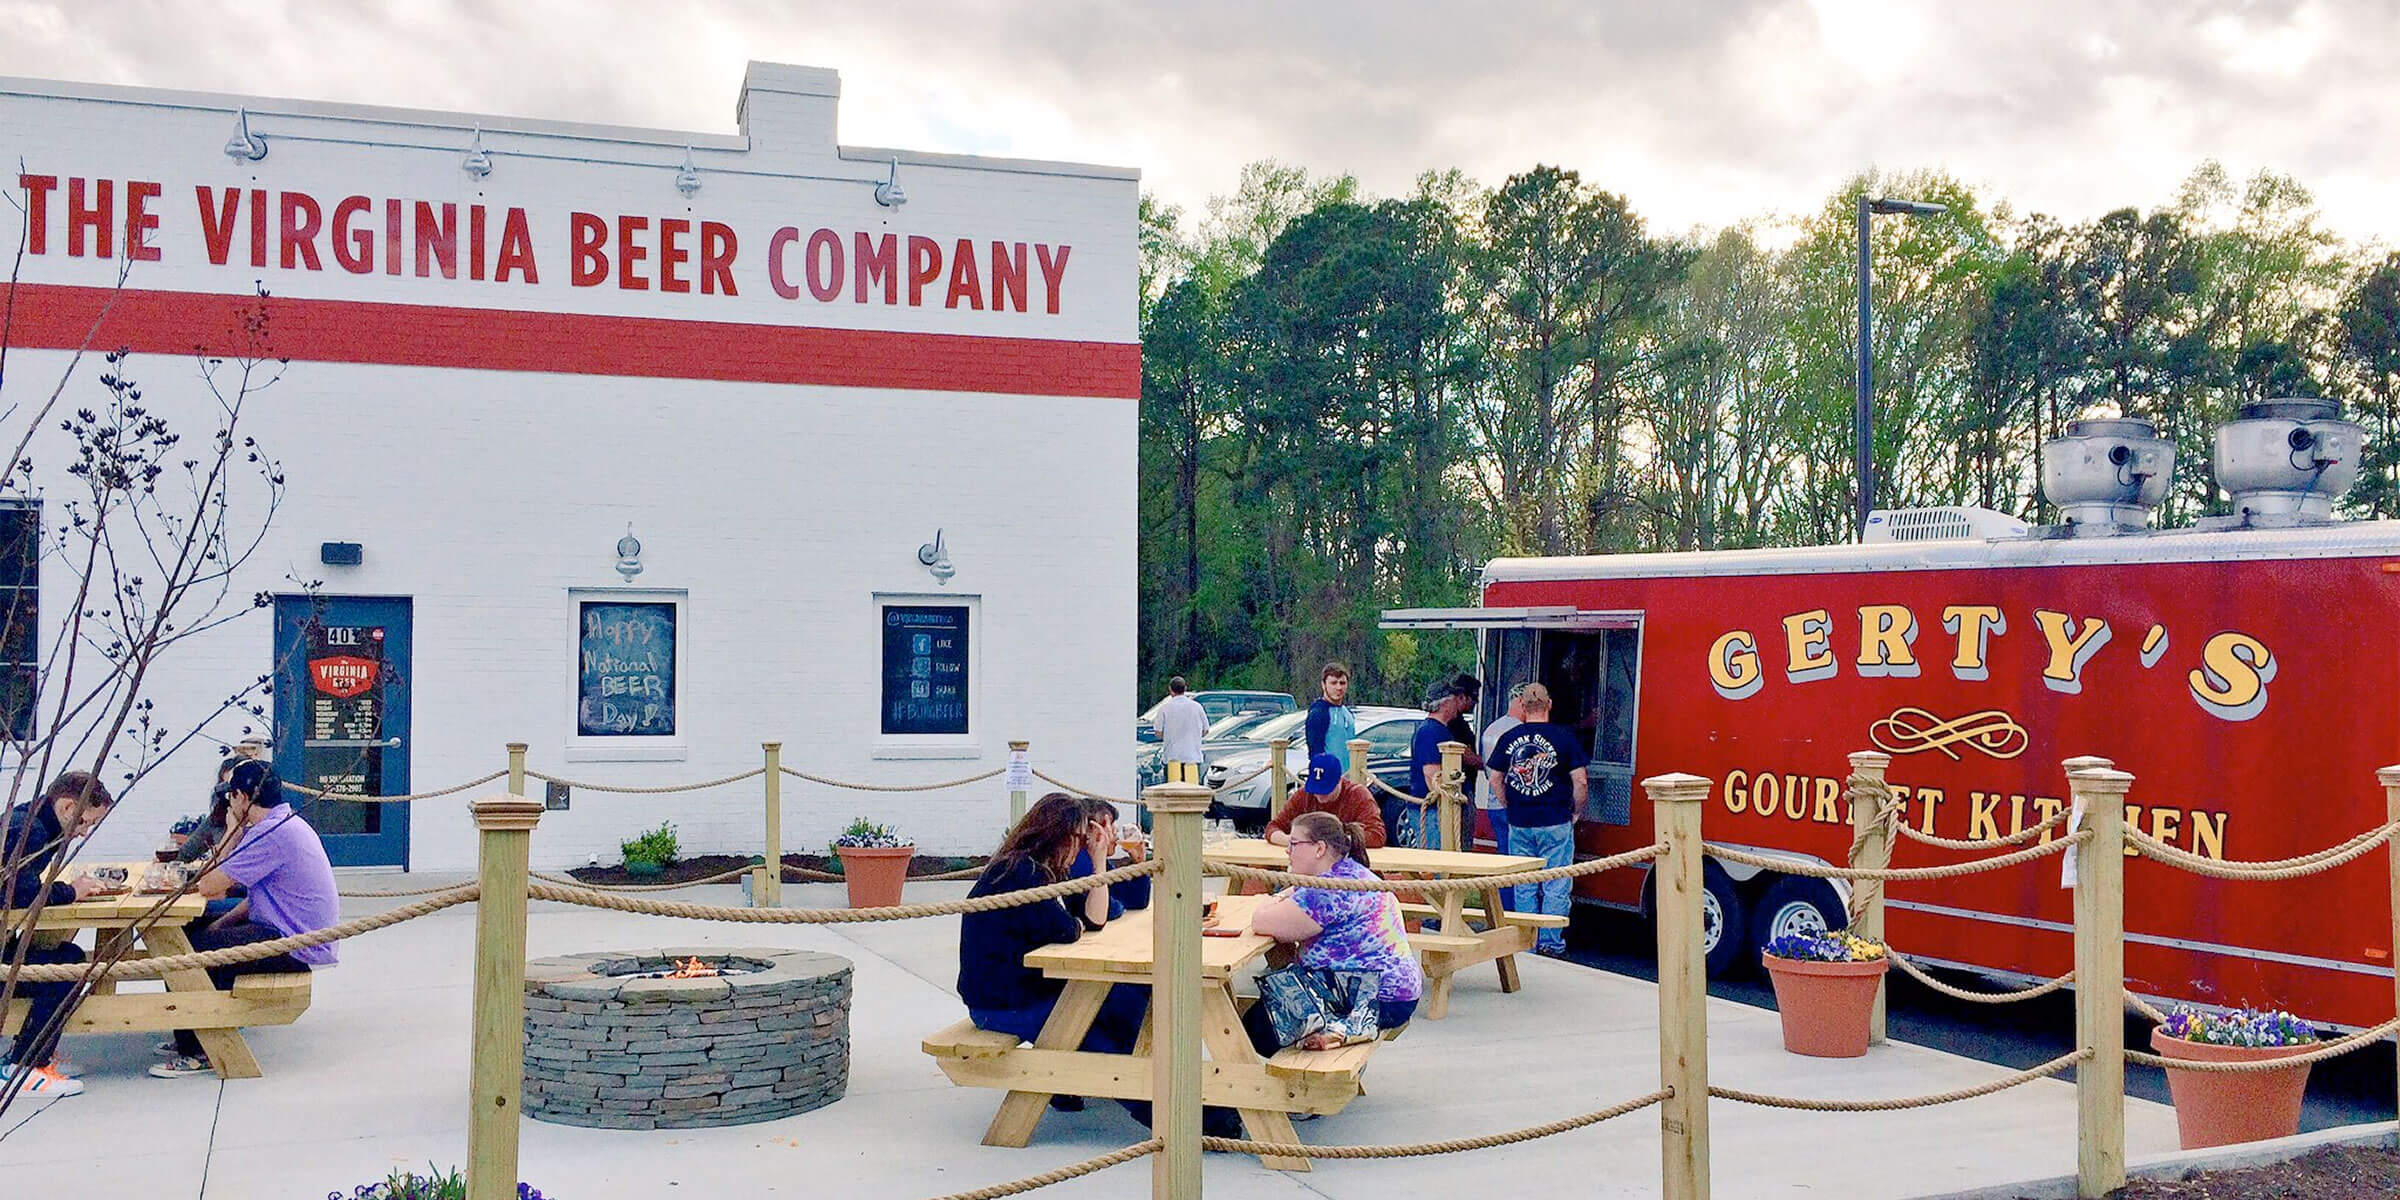 Outside The Virginia Beer Company taproom in Williamsburg, Virginia